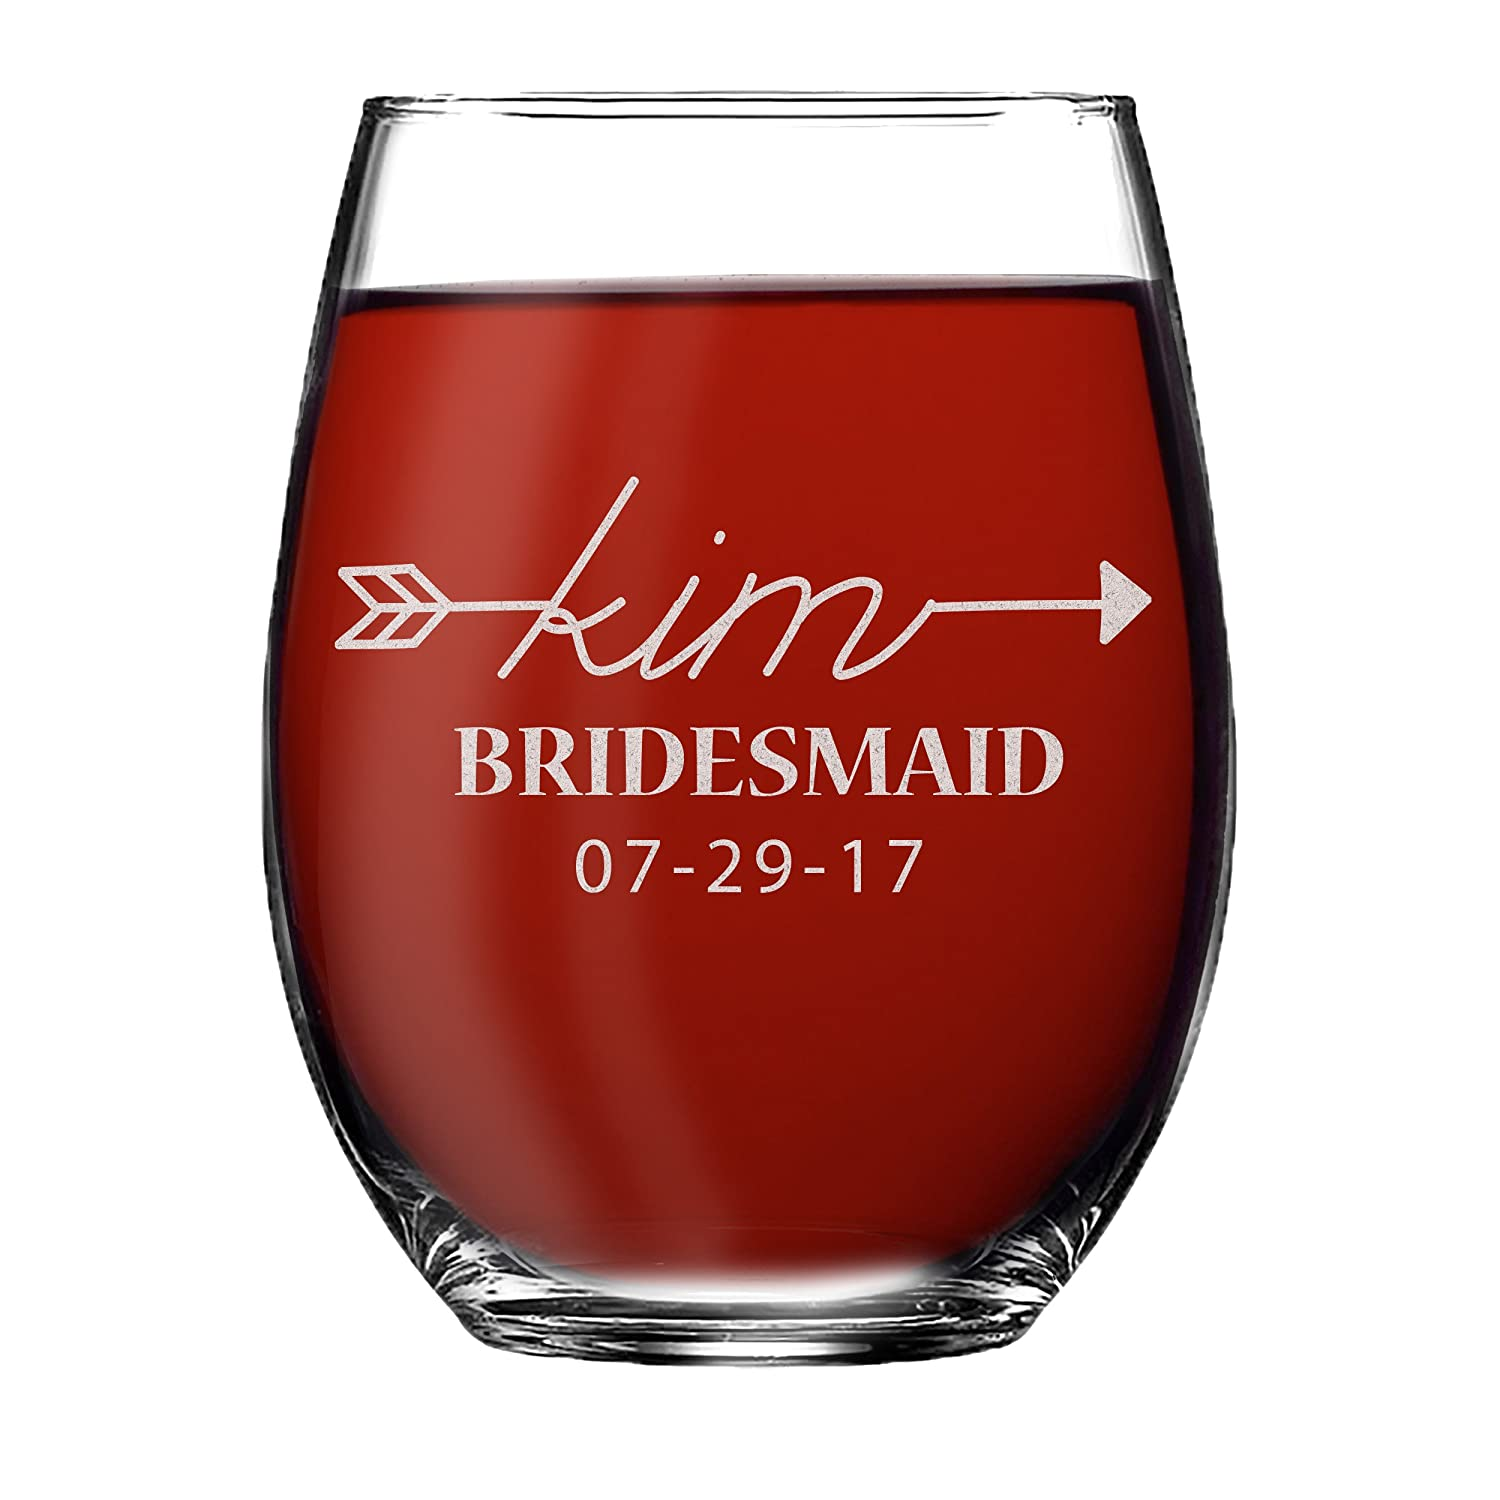 Monogrammed Personalized Stemless Wine Glass Bridesmaid Gifts, Engraved for Free